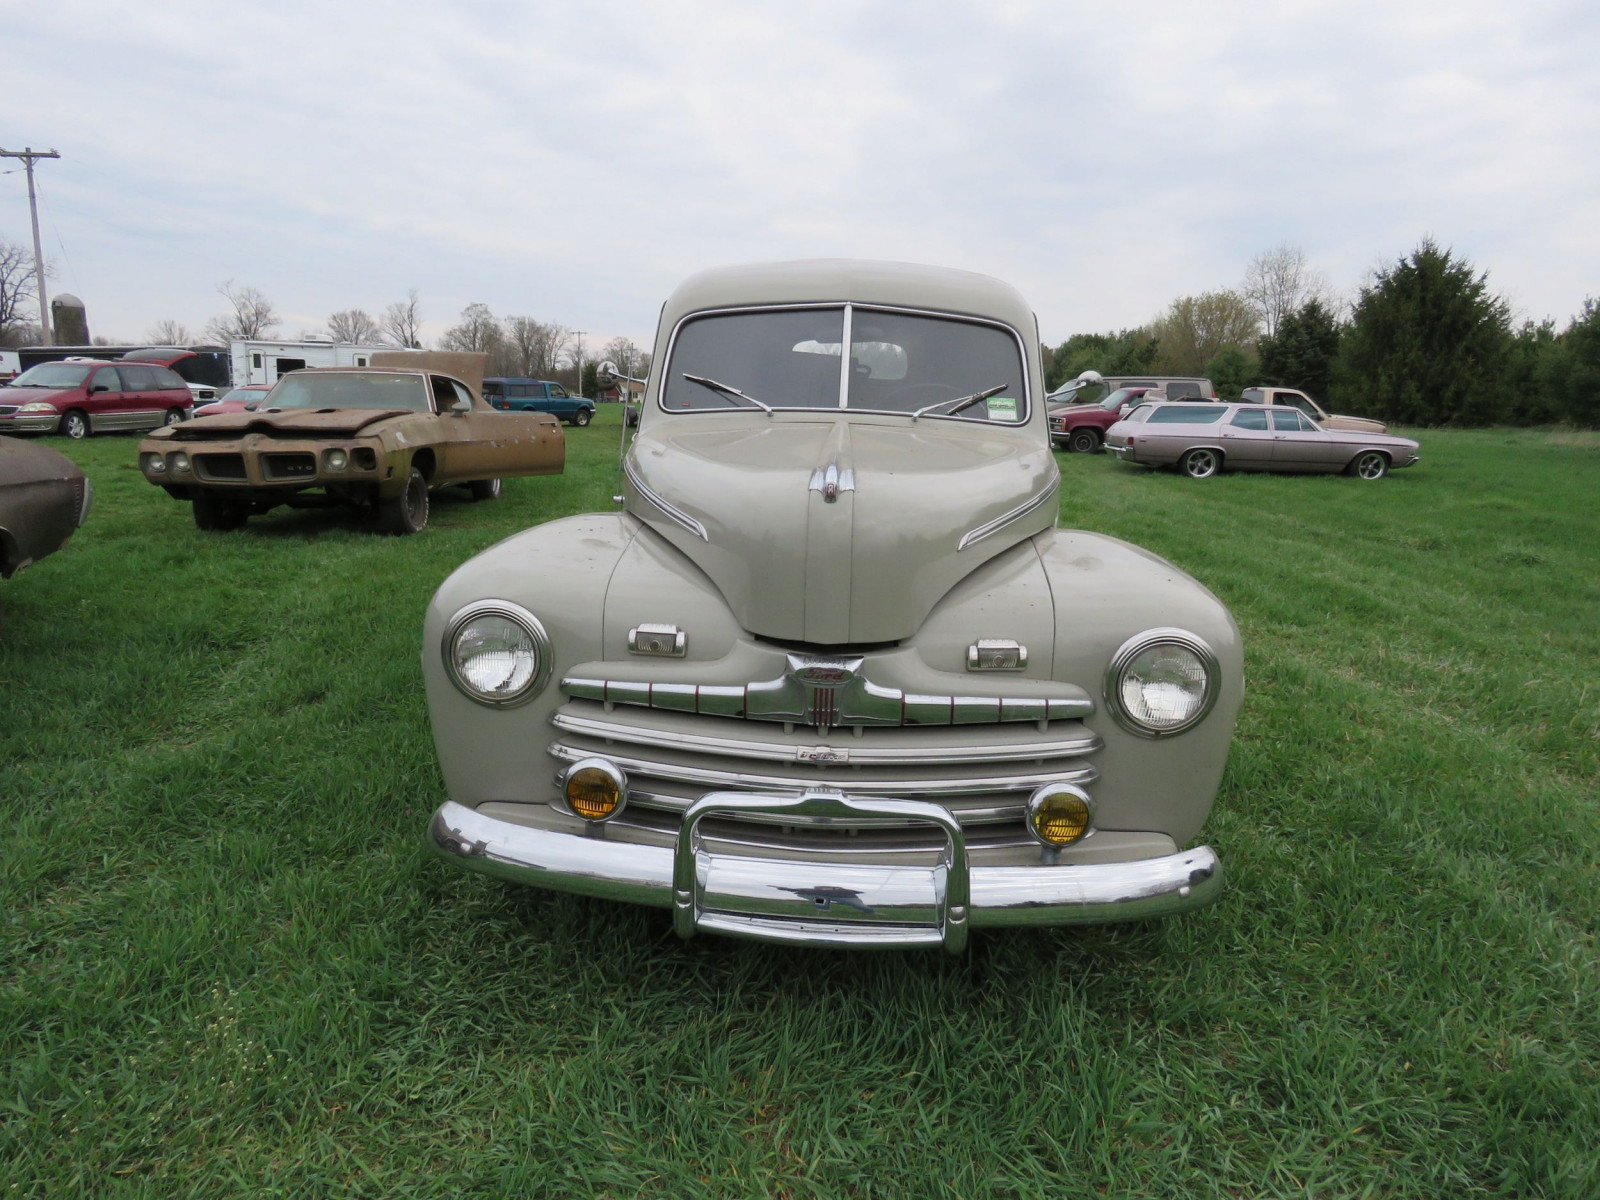 1946 Ford Sedan Delivery - Image 2